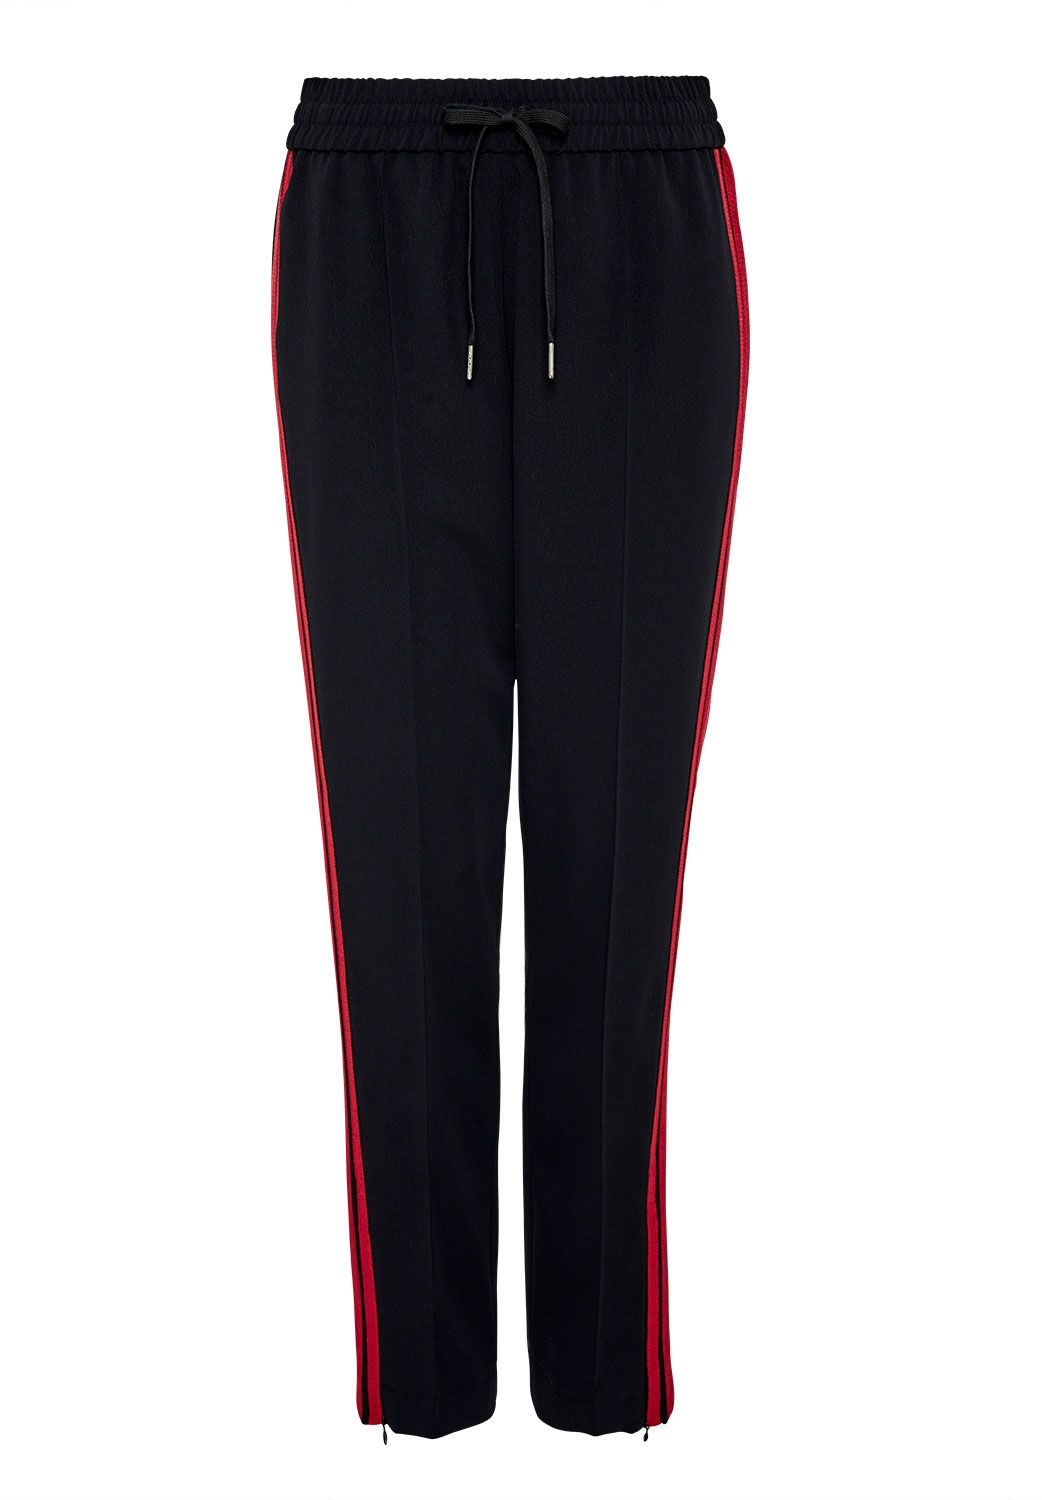 Hallhuber Tracksuit trousers with side ribbons, Black